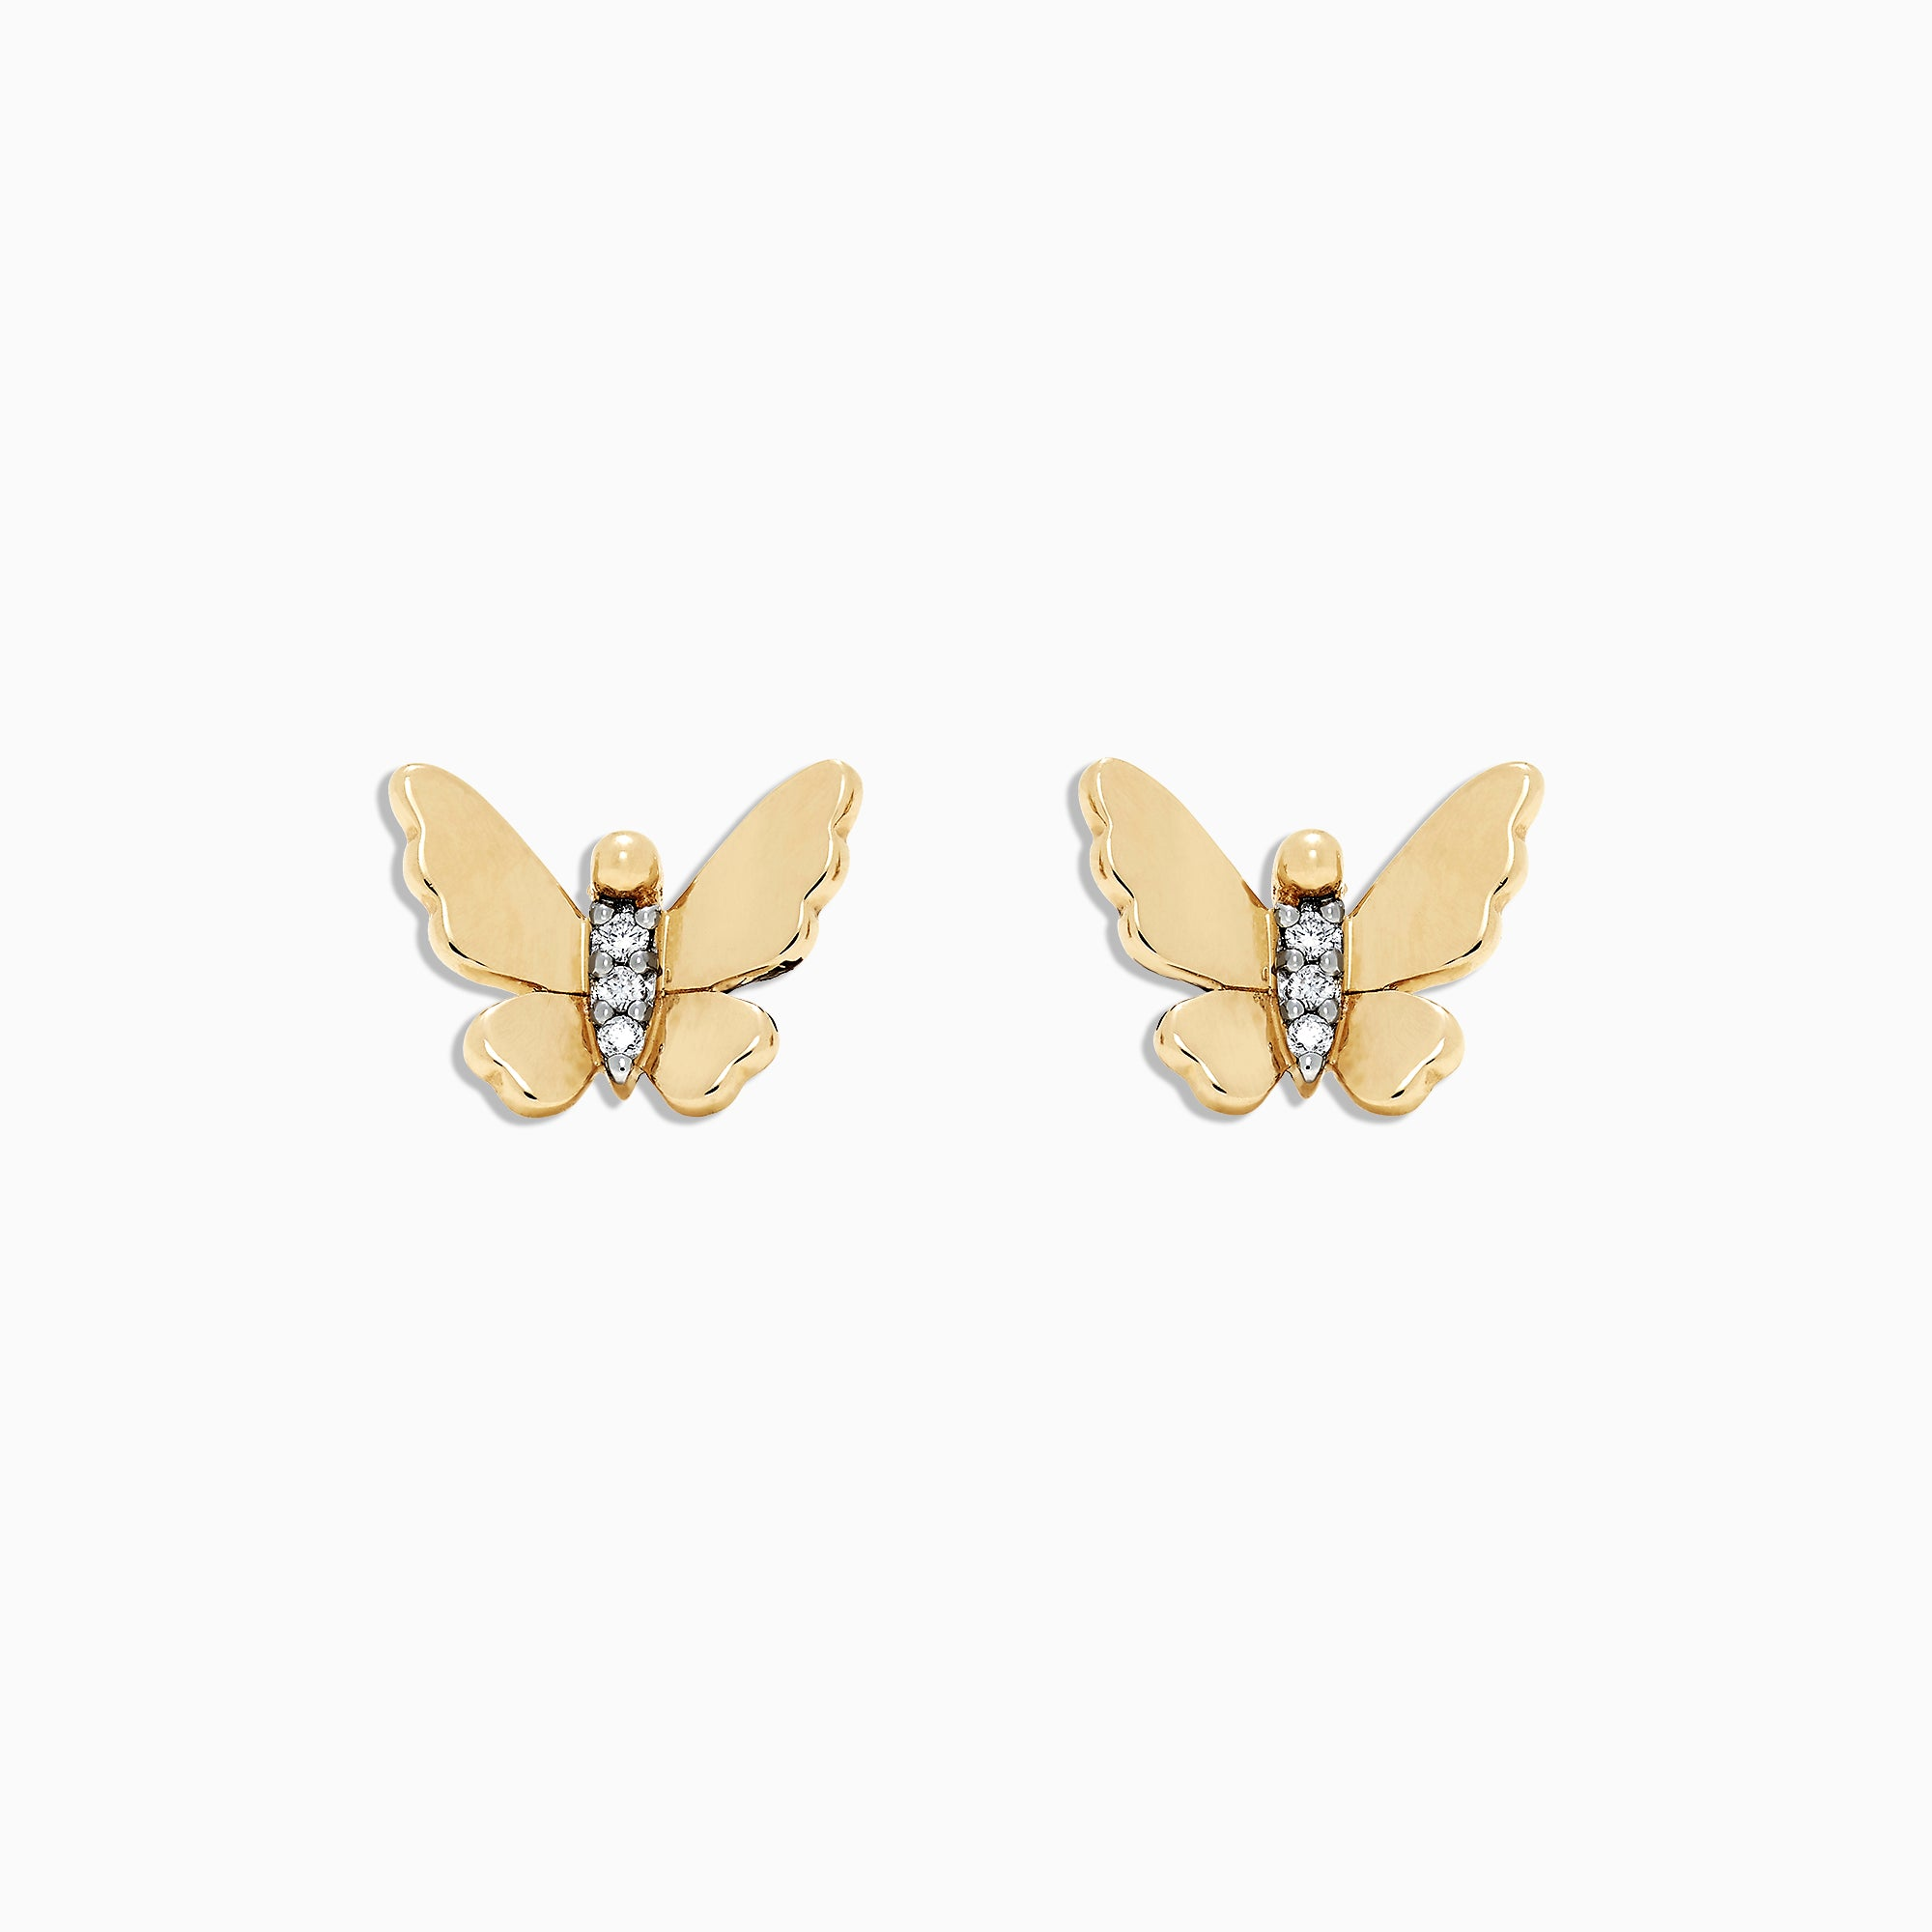 Effy Kidz 14K Yellow Gold Diamond Accented Butterfly Earrings, 0.03 TCW